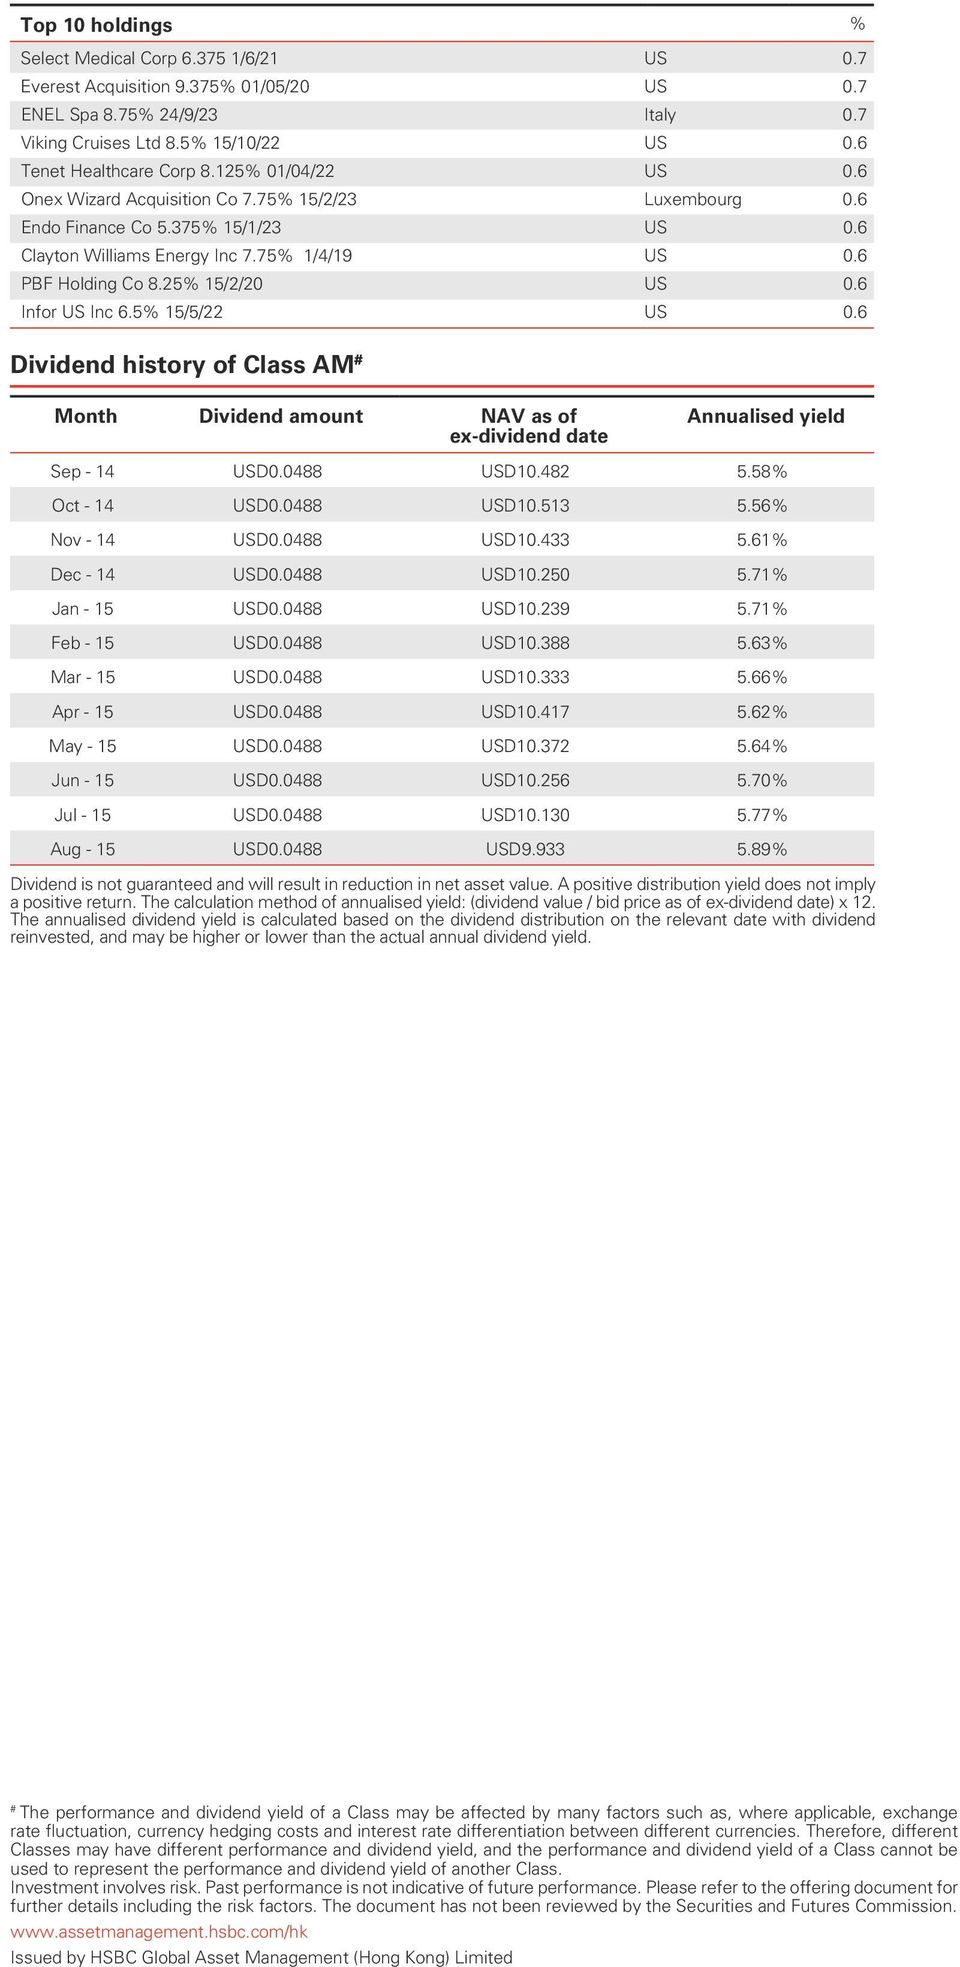 6 Infor US Inc 6.5% 15/5/22 US 0.6 Dividend history of Class AM # Month Dividend amount NAV as of ex-dividend date Annualised yield Sep - 14 USD0.0488 USD10.482 5.58% Oct - 14 USD0.0488 USD10.513 5.